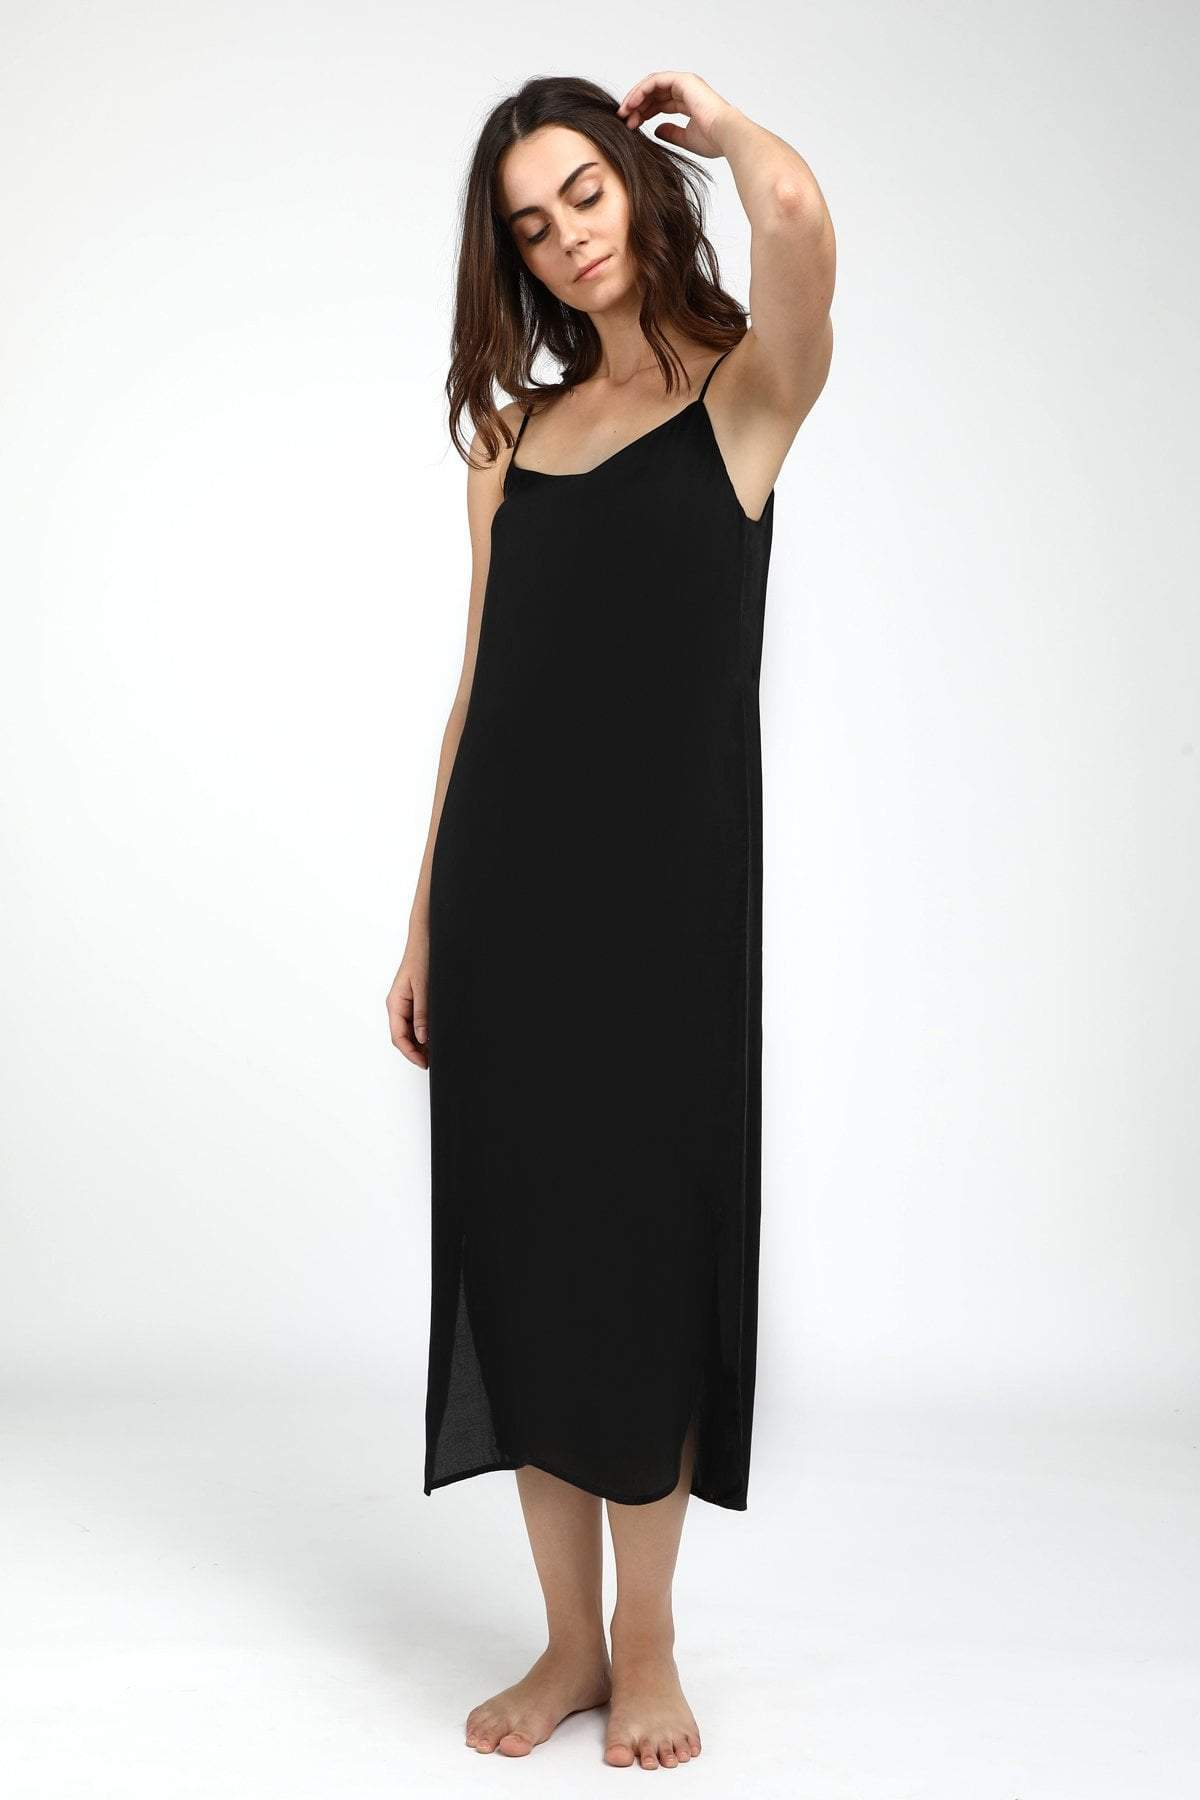 Neu Nomads Easy Slip Dress - Slate Black